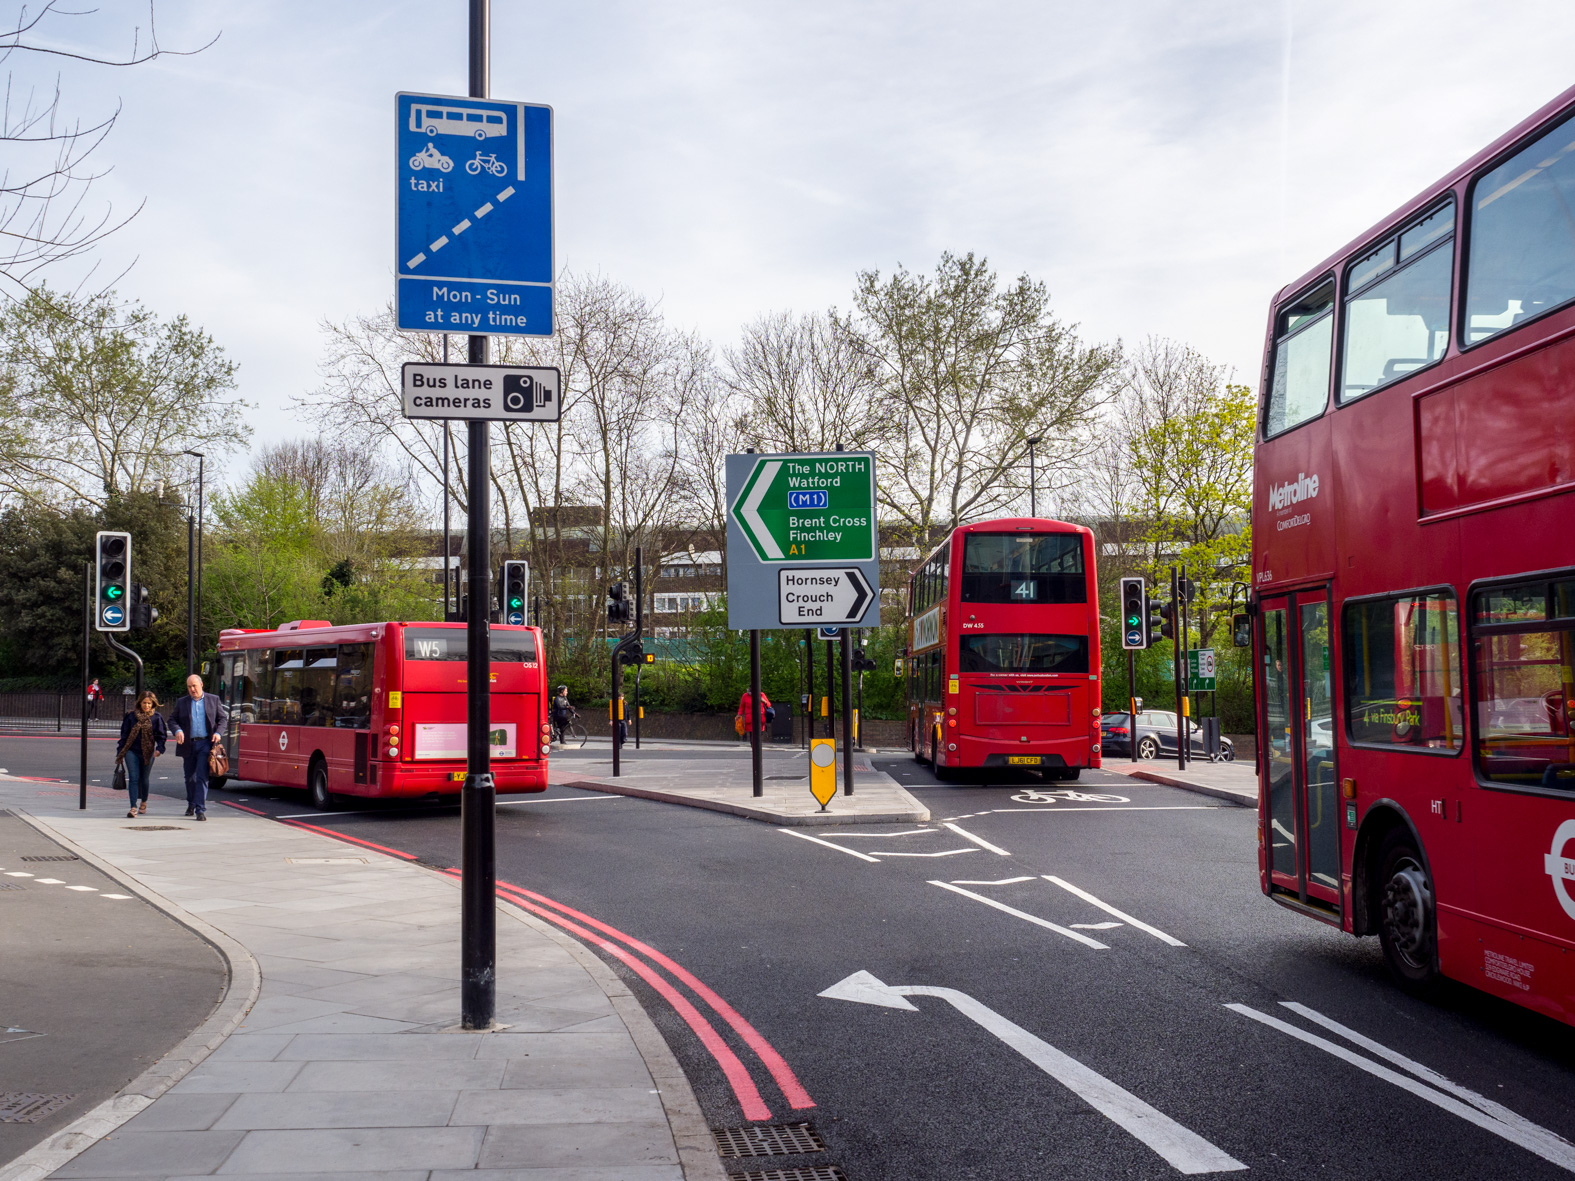 A single decker bus travels north on the A1. Archway, London.